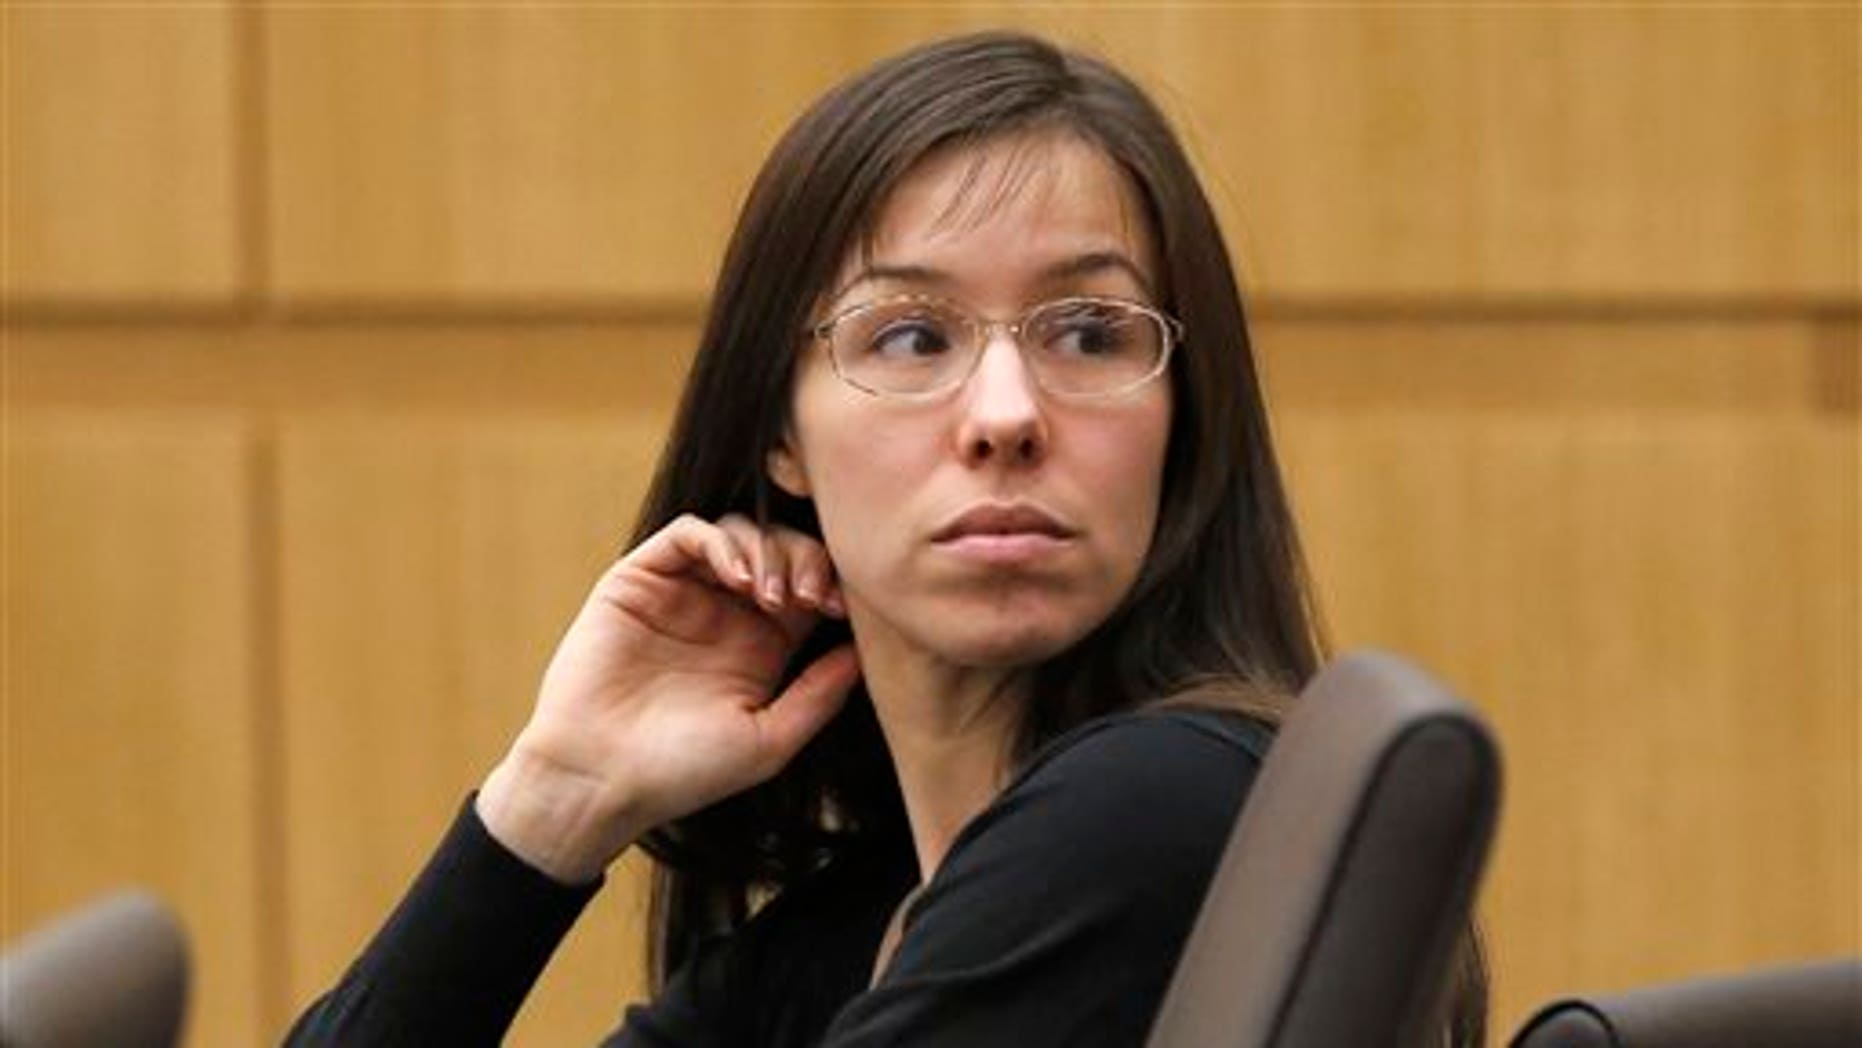 Convicted killer Jodi Arias is suing her ex-defense attorney for allegedly breaking attorney-client confidentiality in tell-all book.